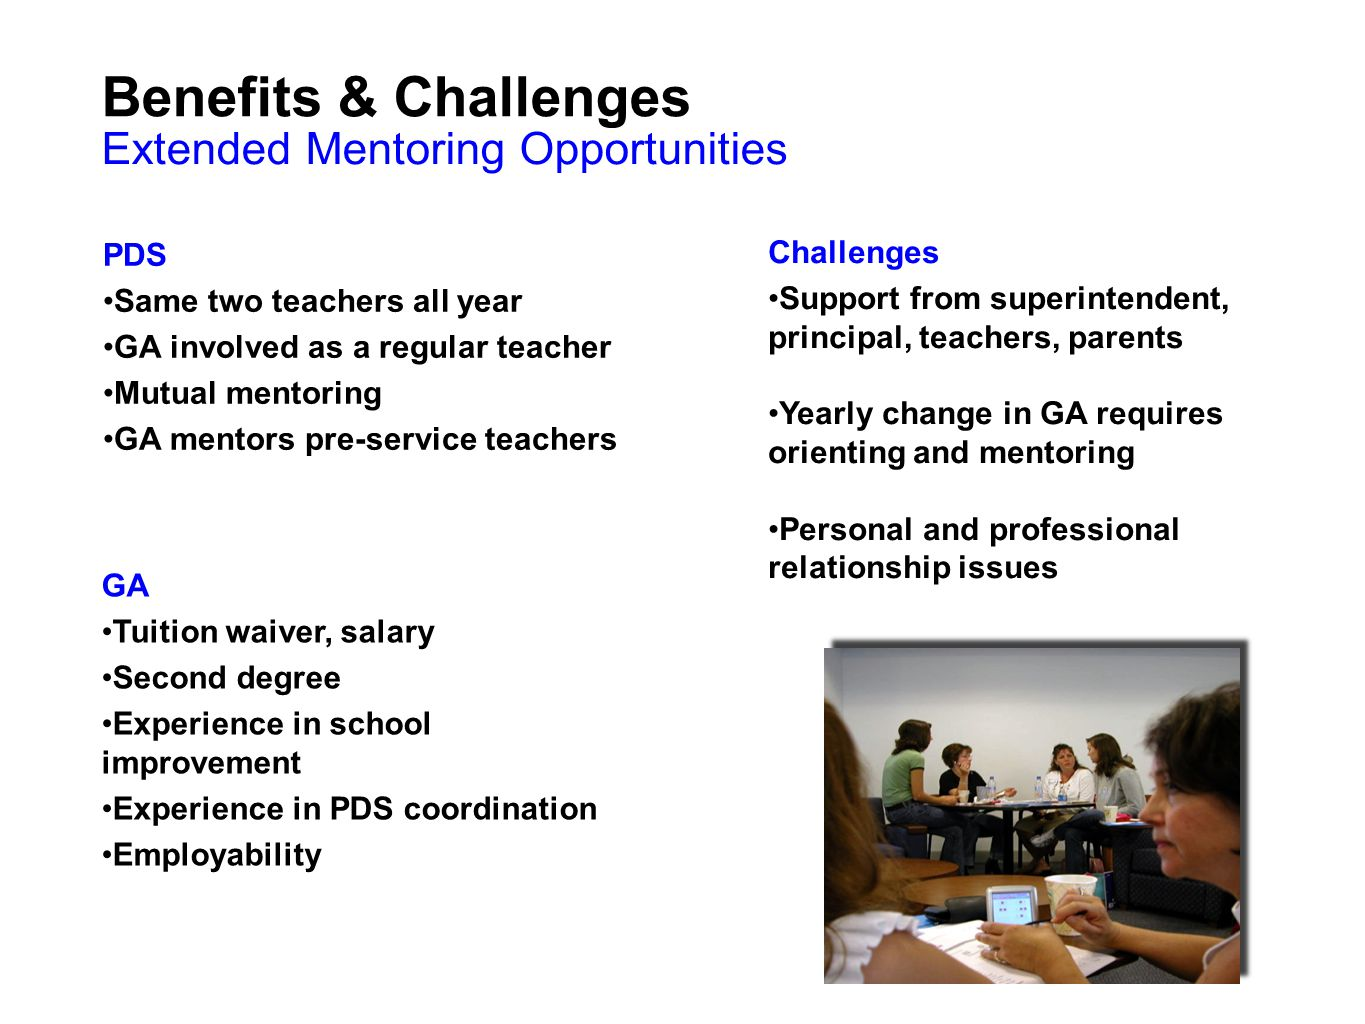 Benefits & Challenges Extended Mentoring Opportunities PDS Challenges